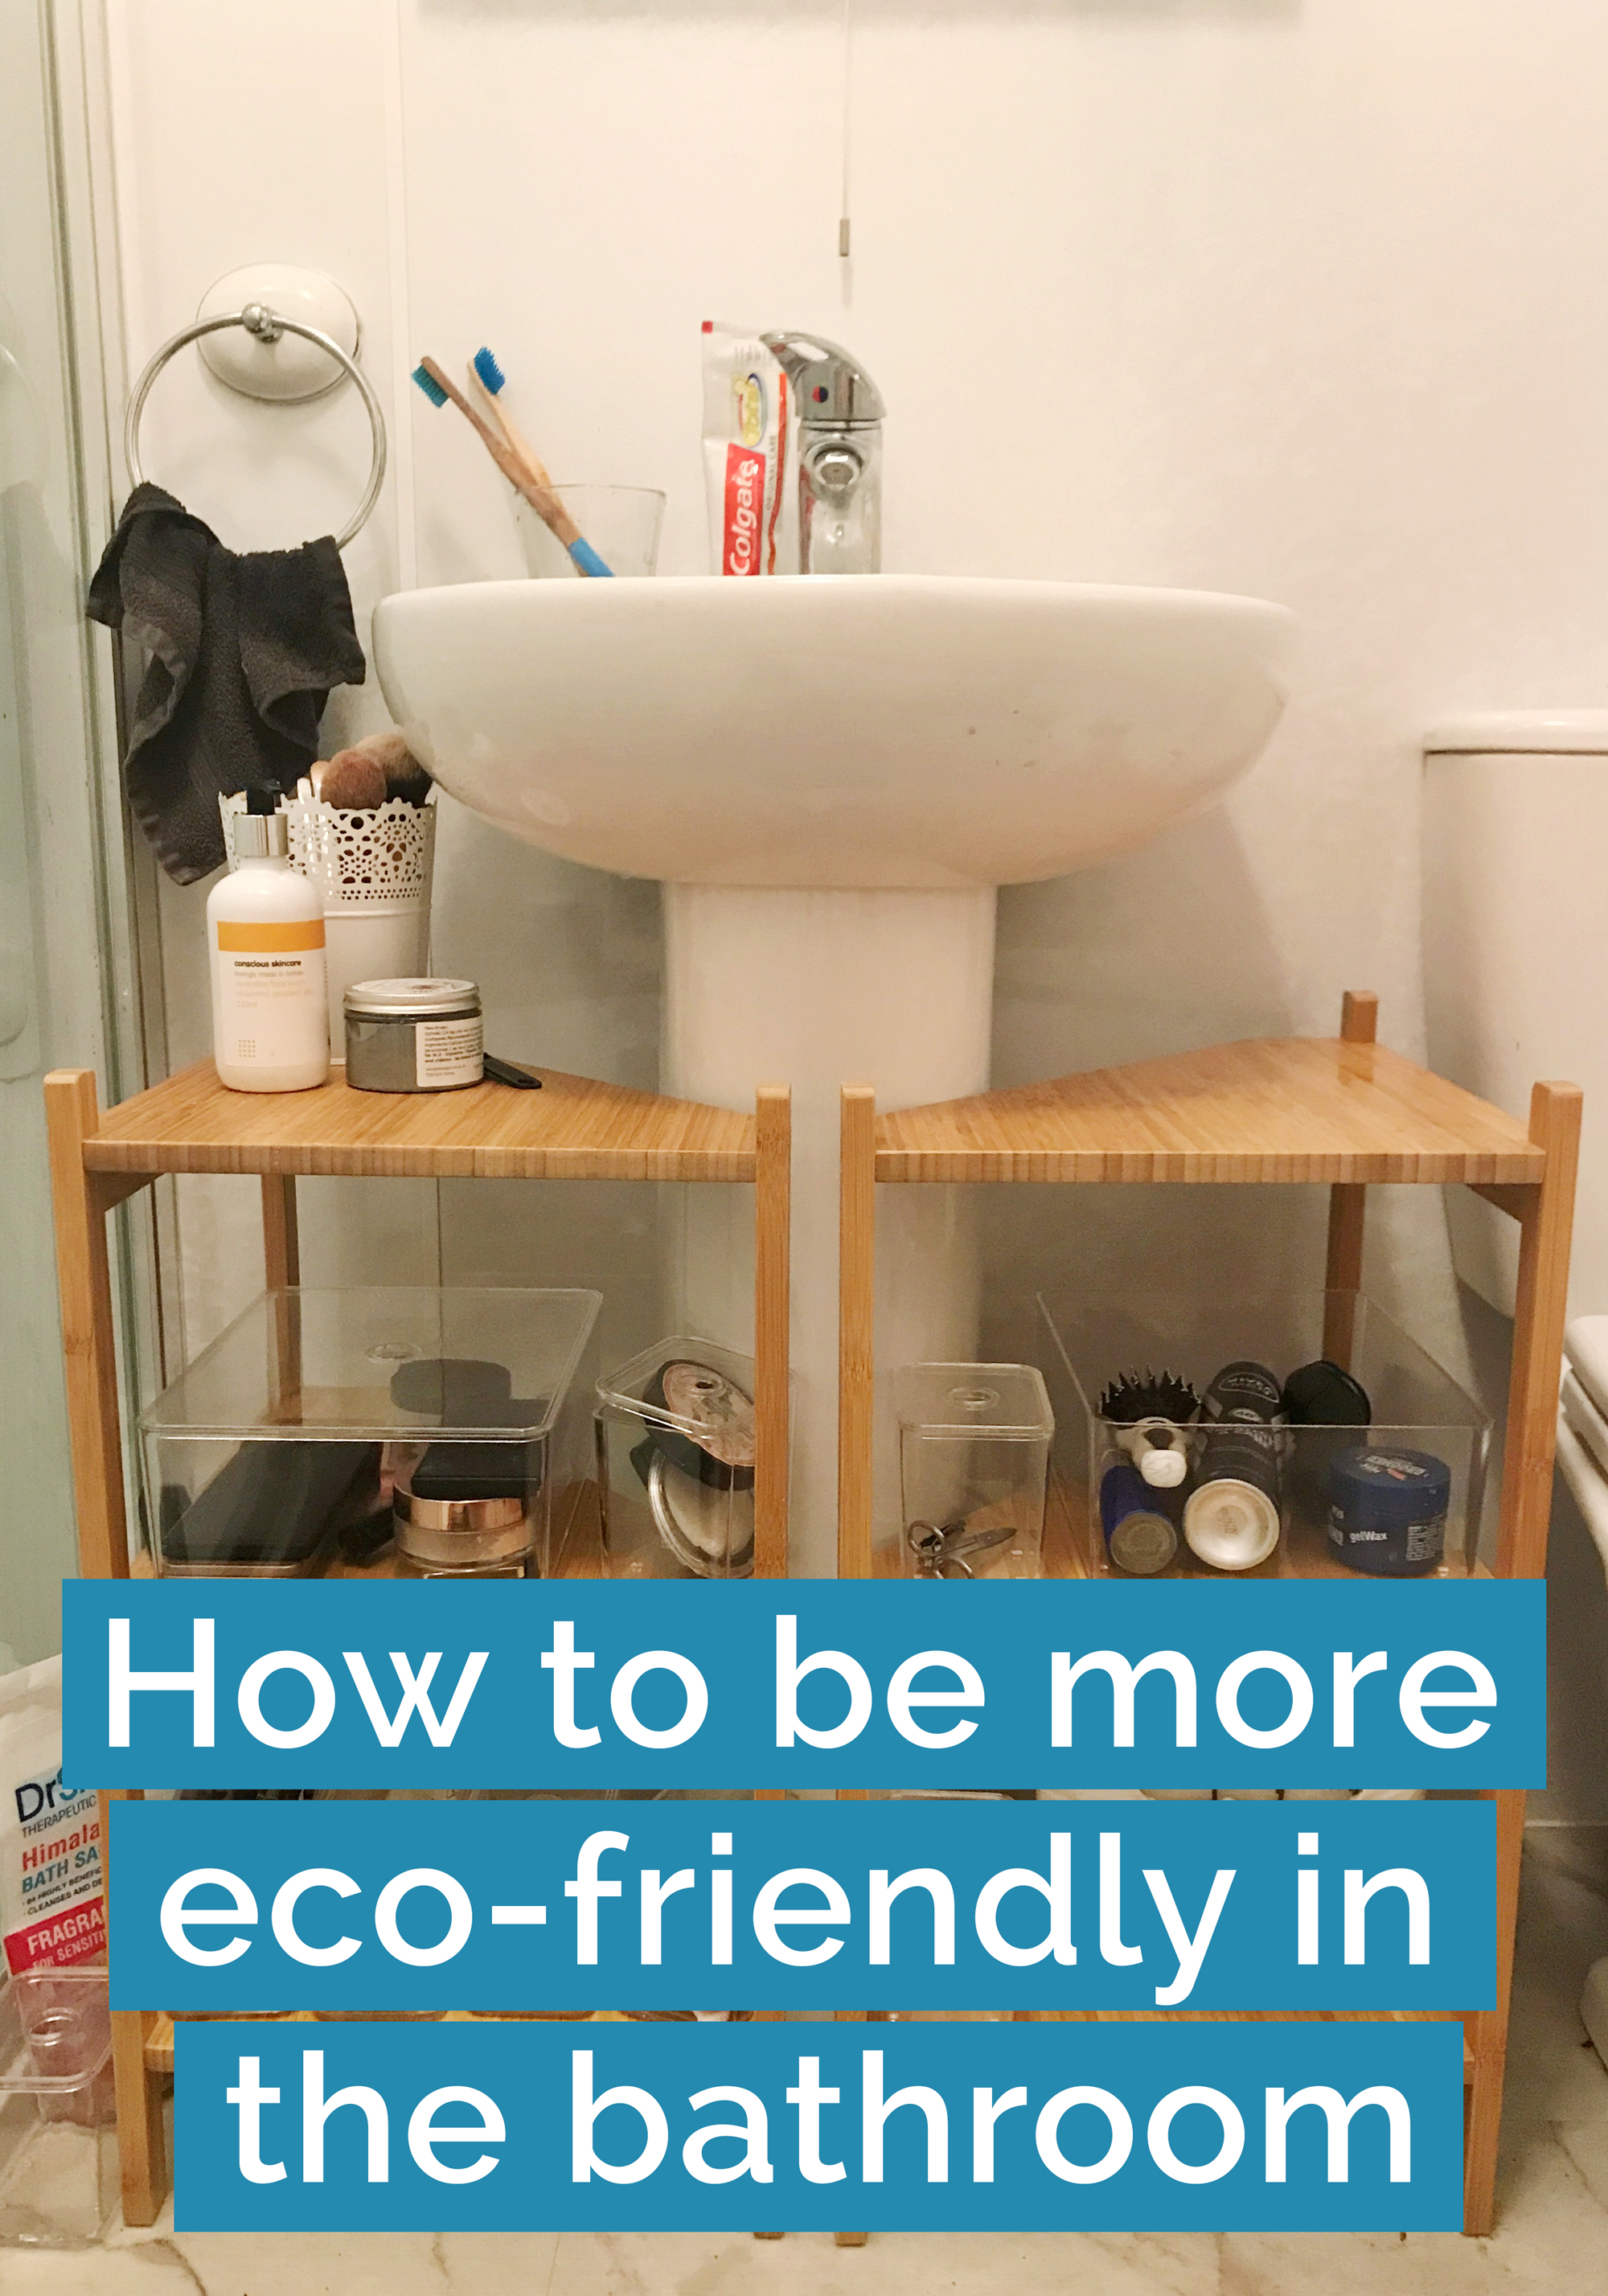 8 ways to be more eco-friendly in the bathroom